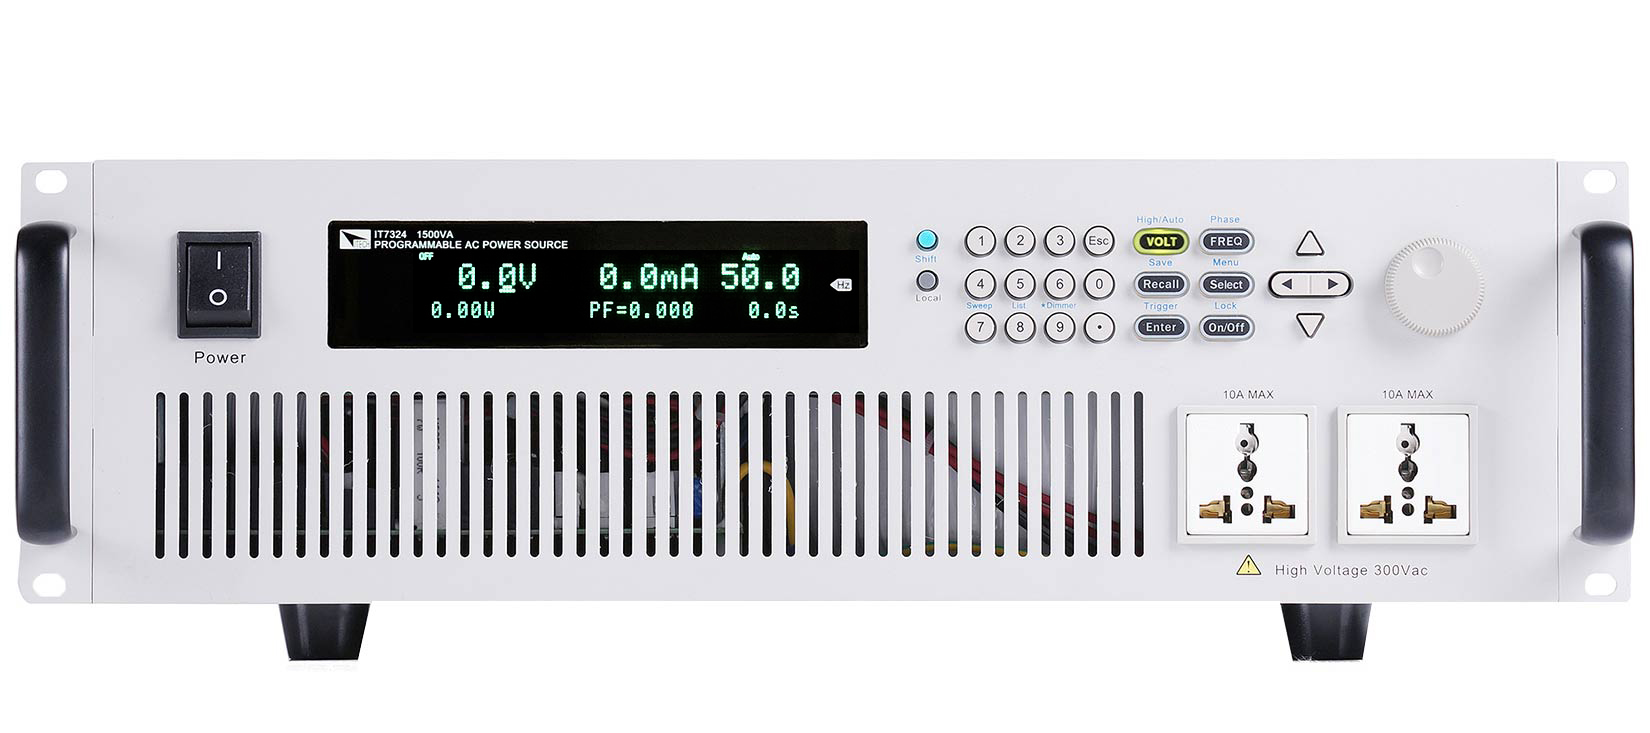 Itech IT7300 Programmable AC Power Supply